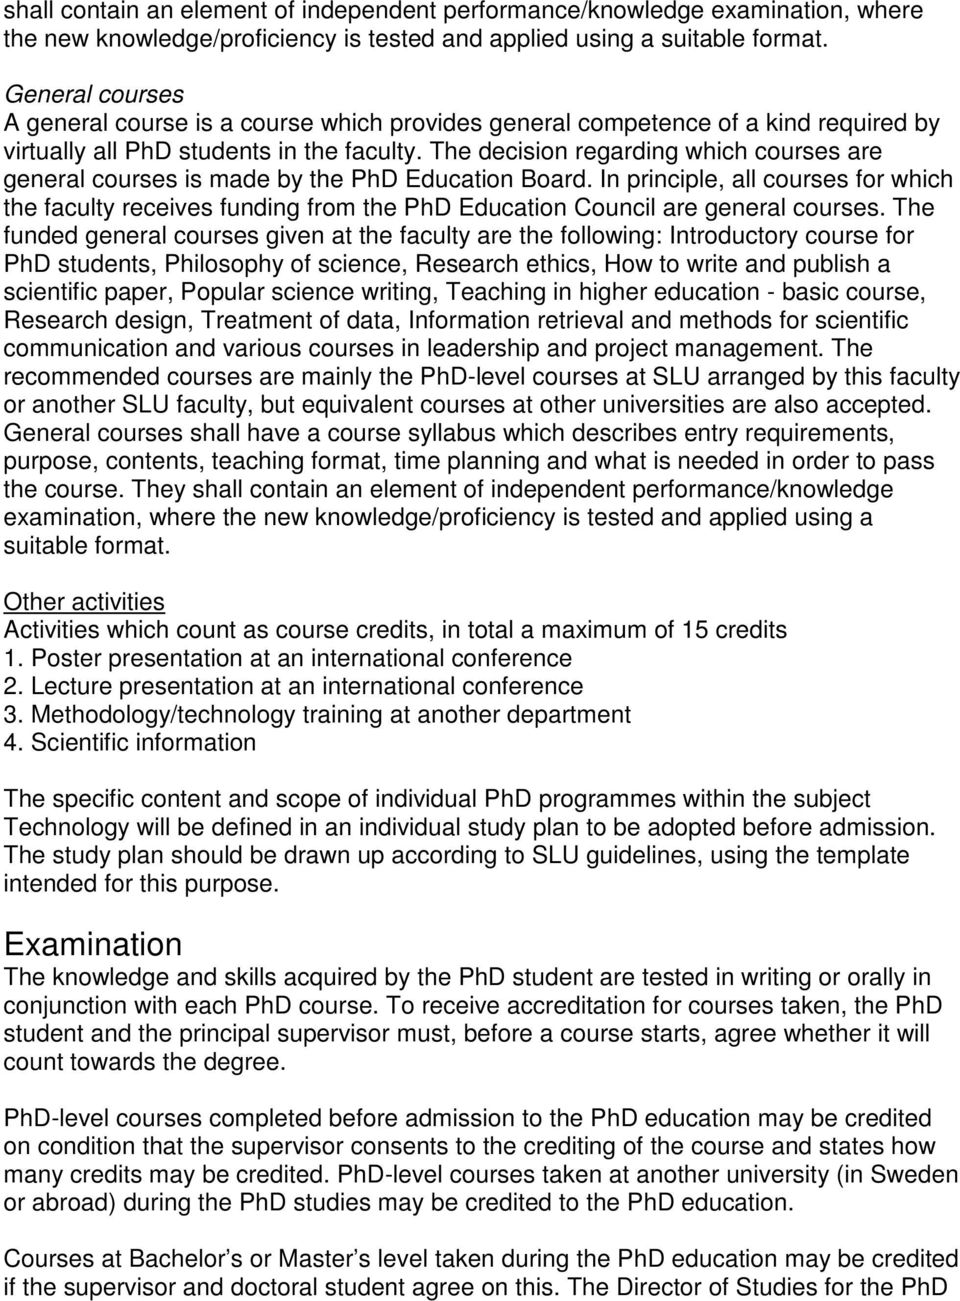 The decision regarding which courses are general courses is made by the PhD Education Board.